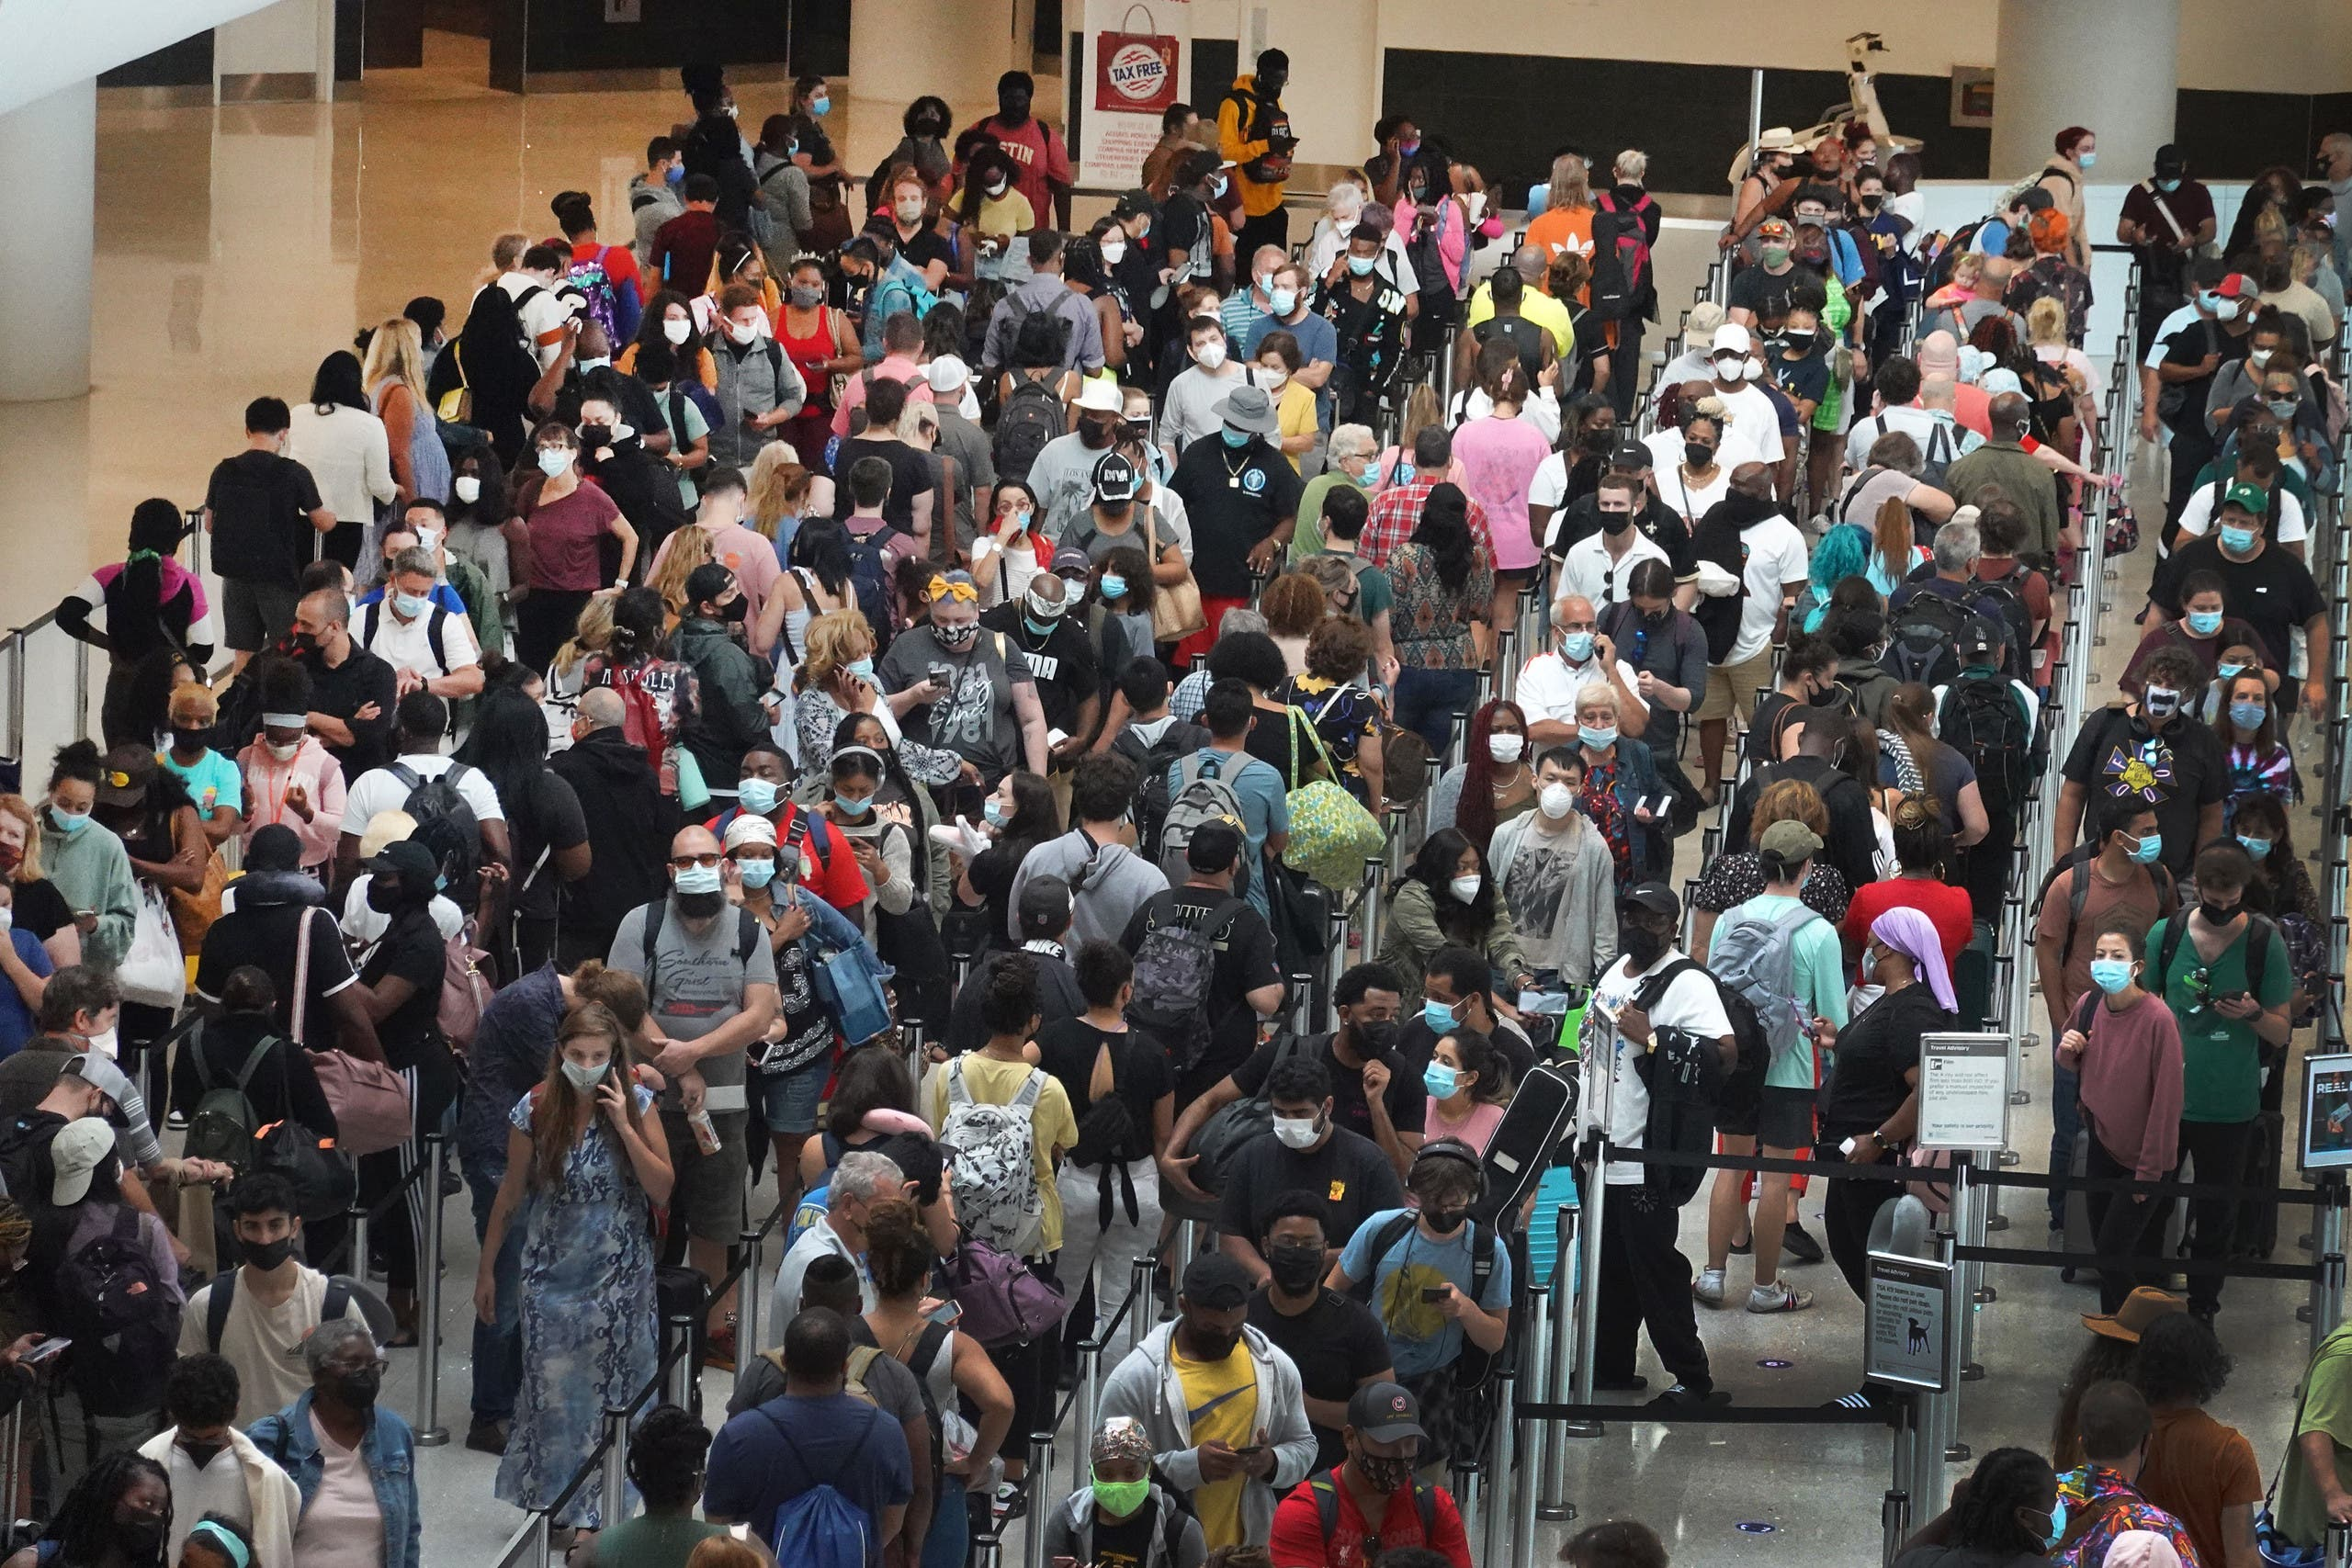 People stand in line to get through the TSA security checkpoint at Louis Armstrong New Orleans International Airport on August 28, 2021 in New Orleans, Louisiana. (AFP)